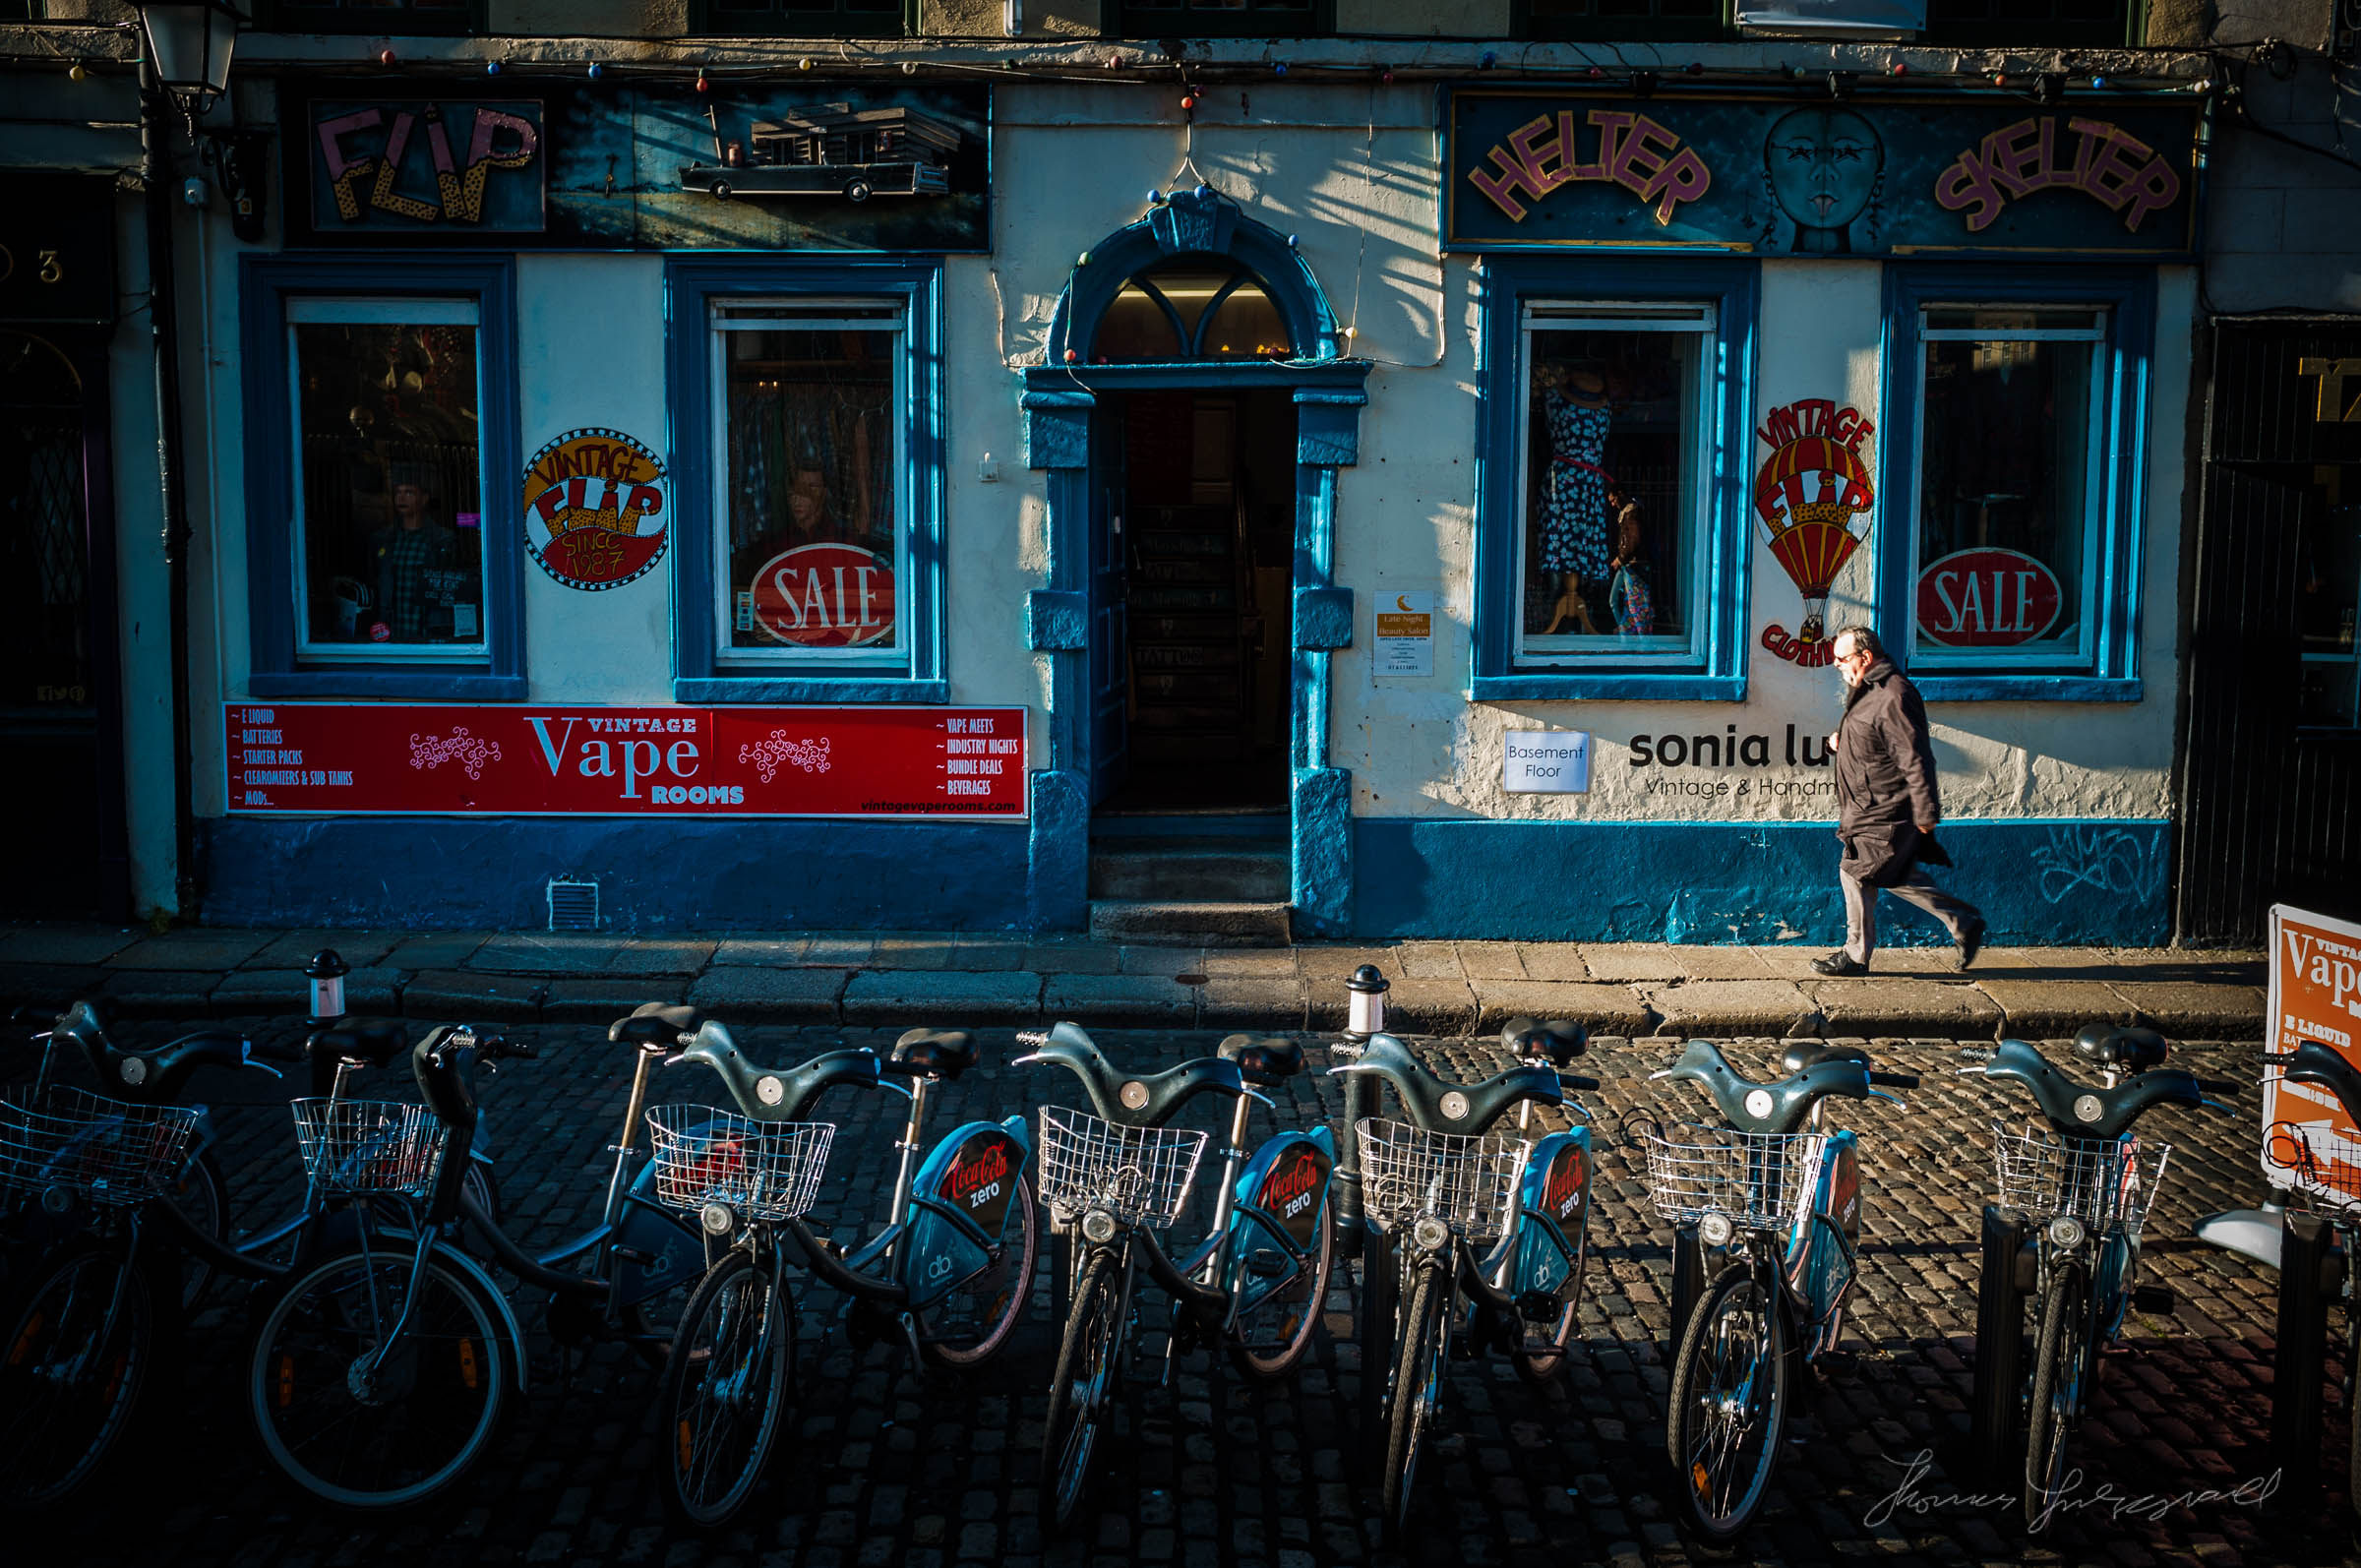 Street Photography Diary by Thomas Fitzgerald Photography